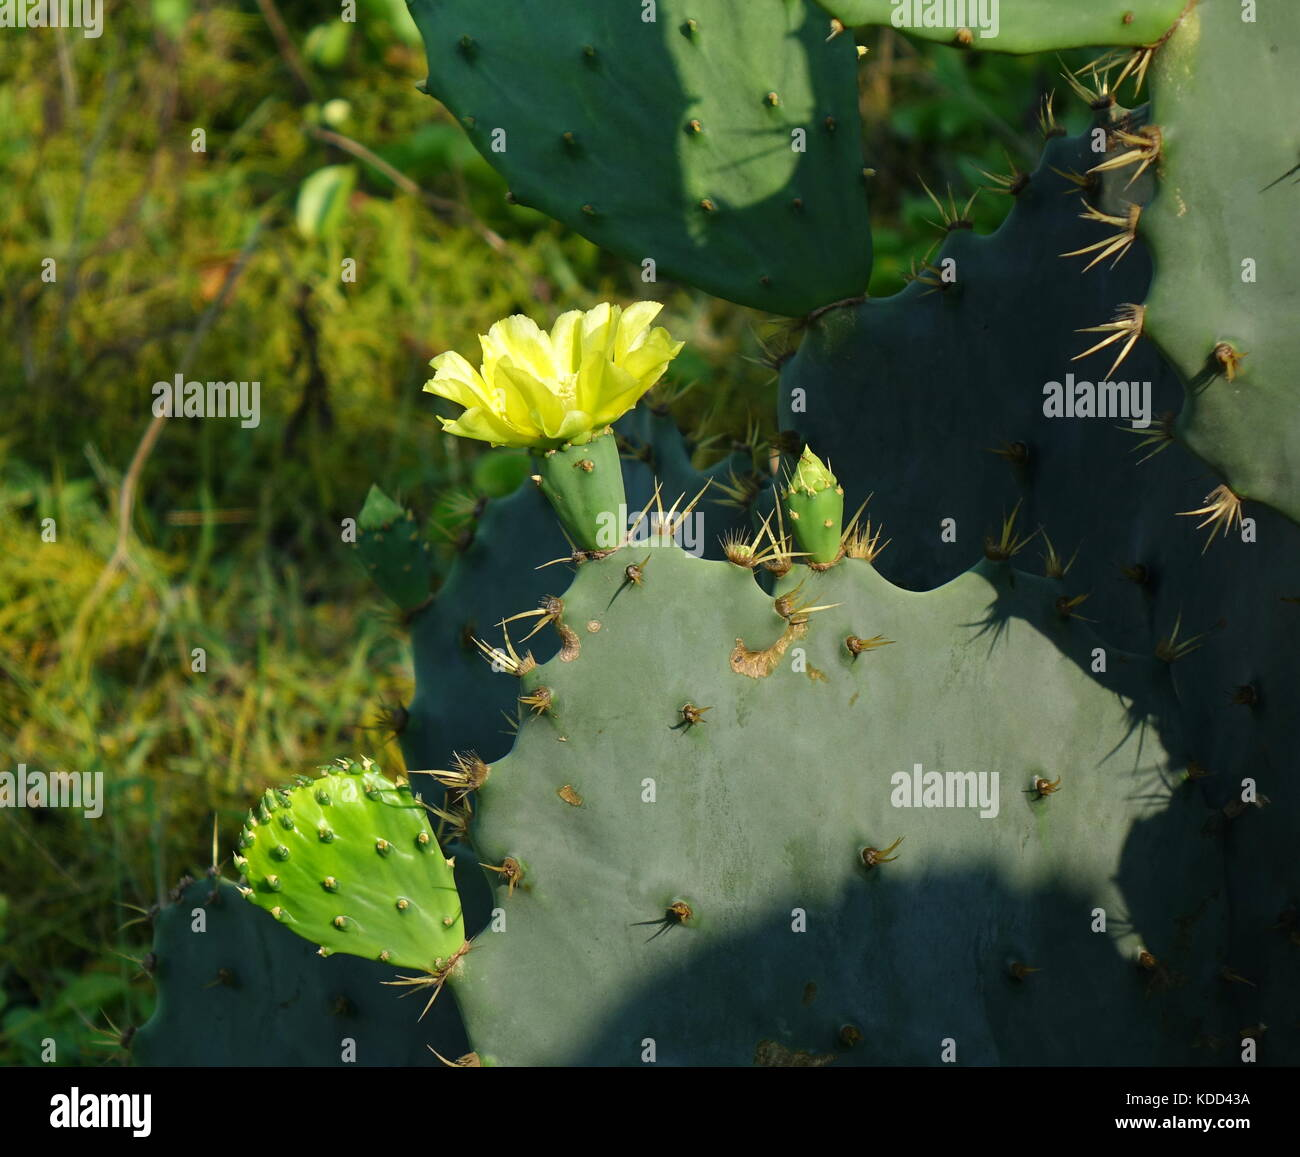 A yellow flower blossoming on a prickly pear cactus, Opuntia Robusta Stock Photo